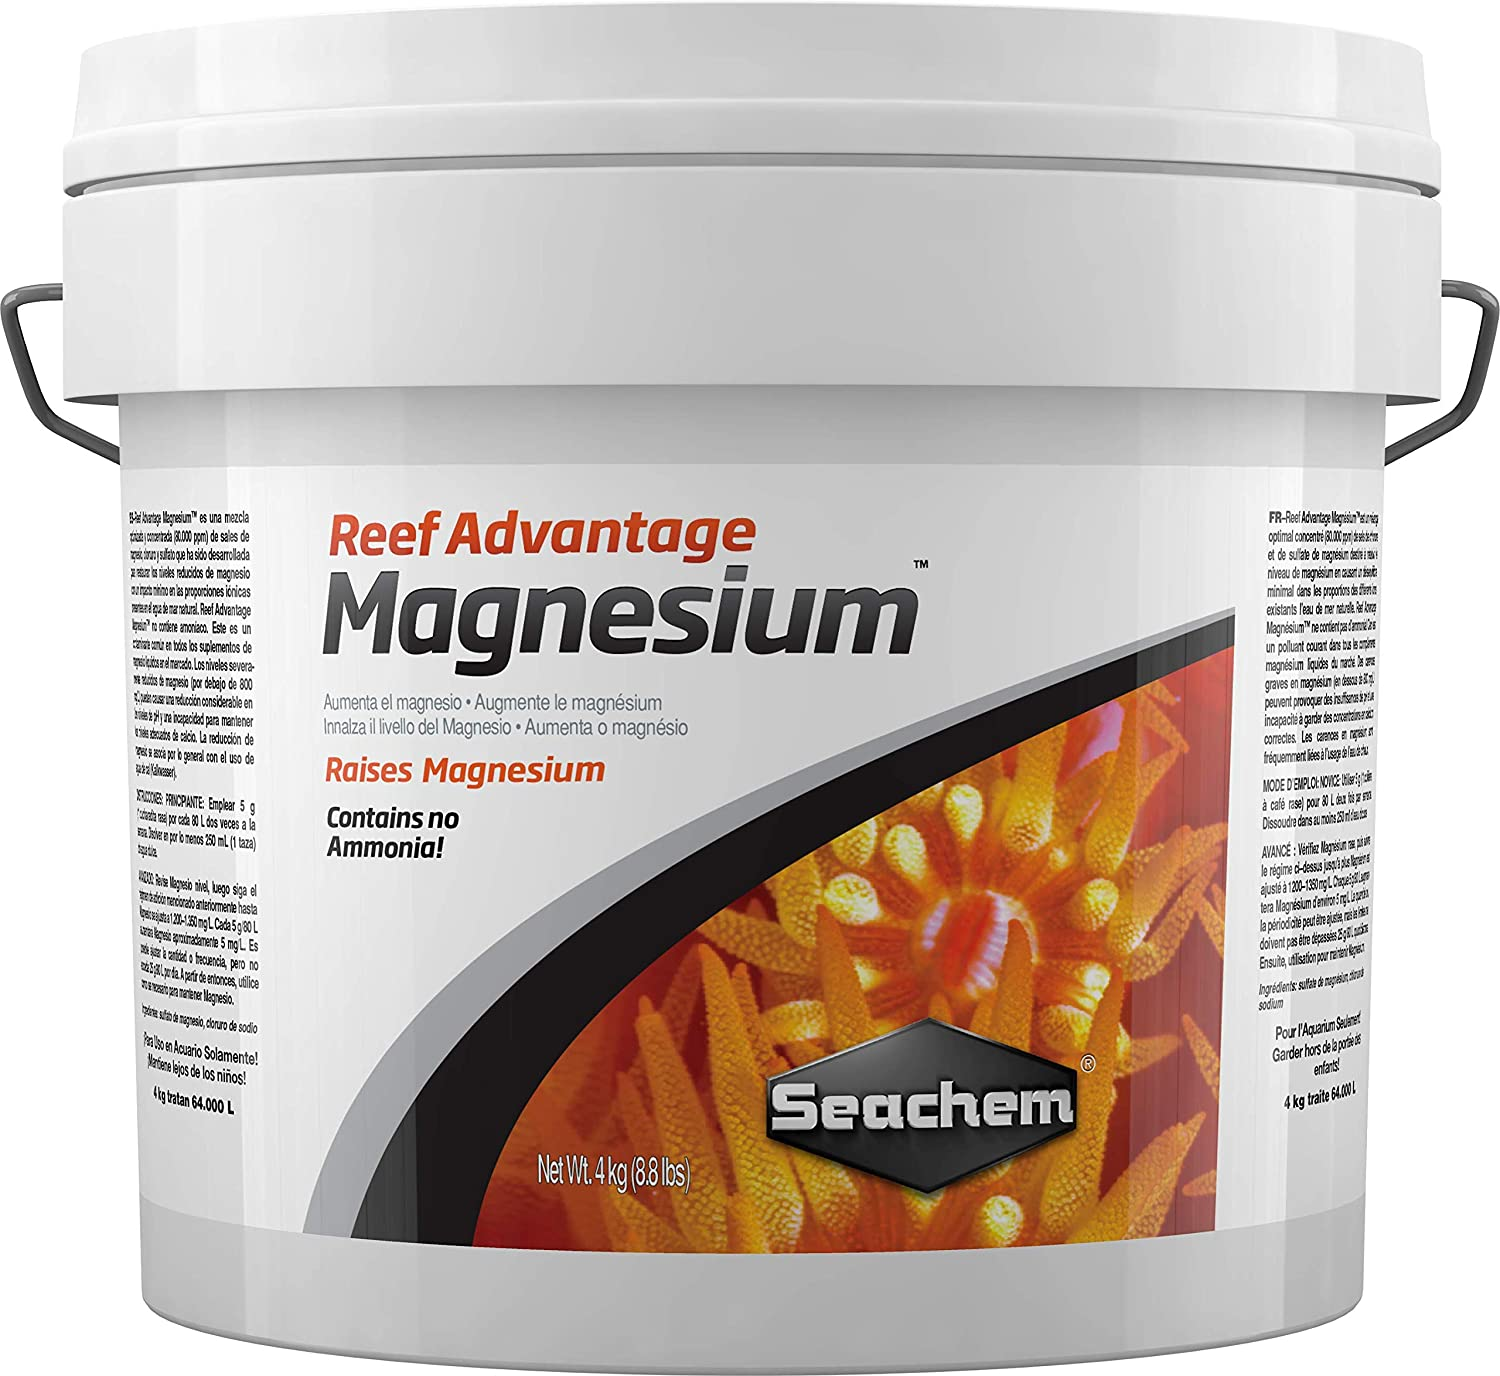 Amazon.com : Reef Advantage Magnesium, 4 kg / 8.8 lbs : Aquarium Treatments : Pet Supplies